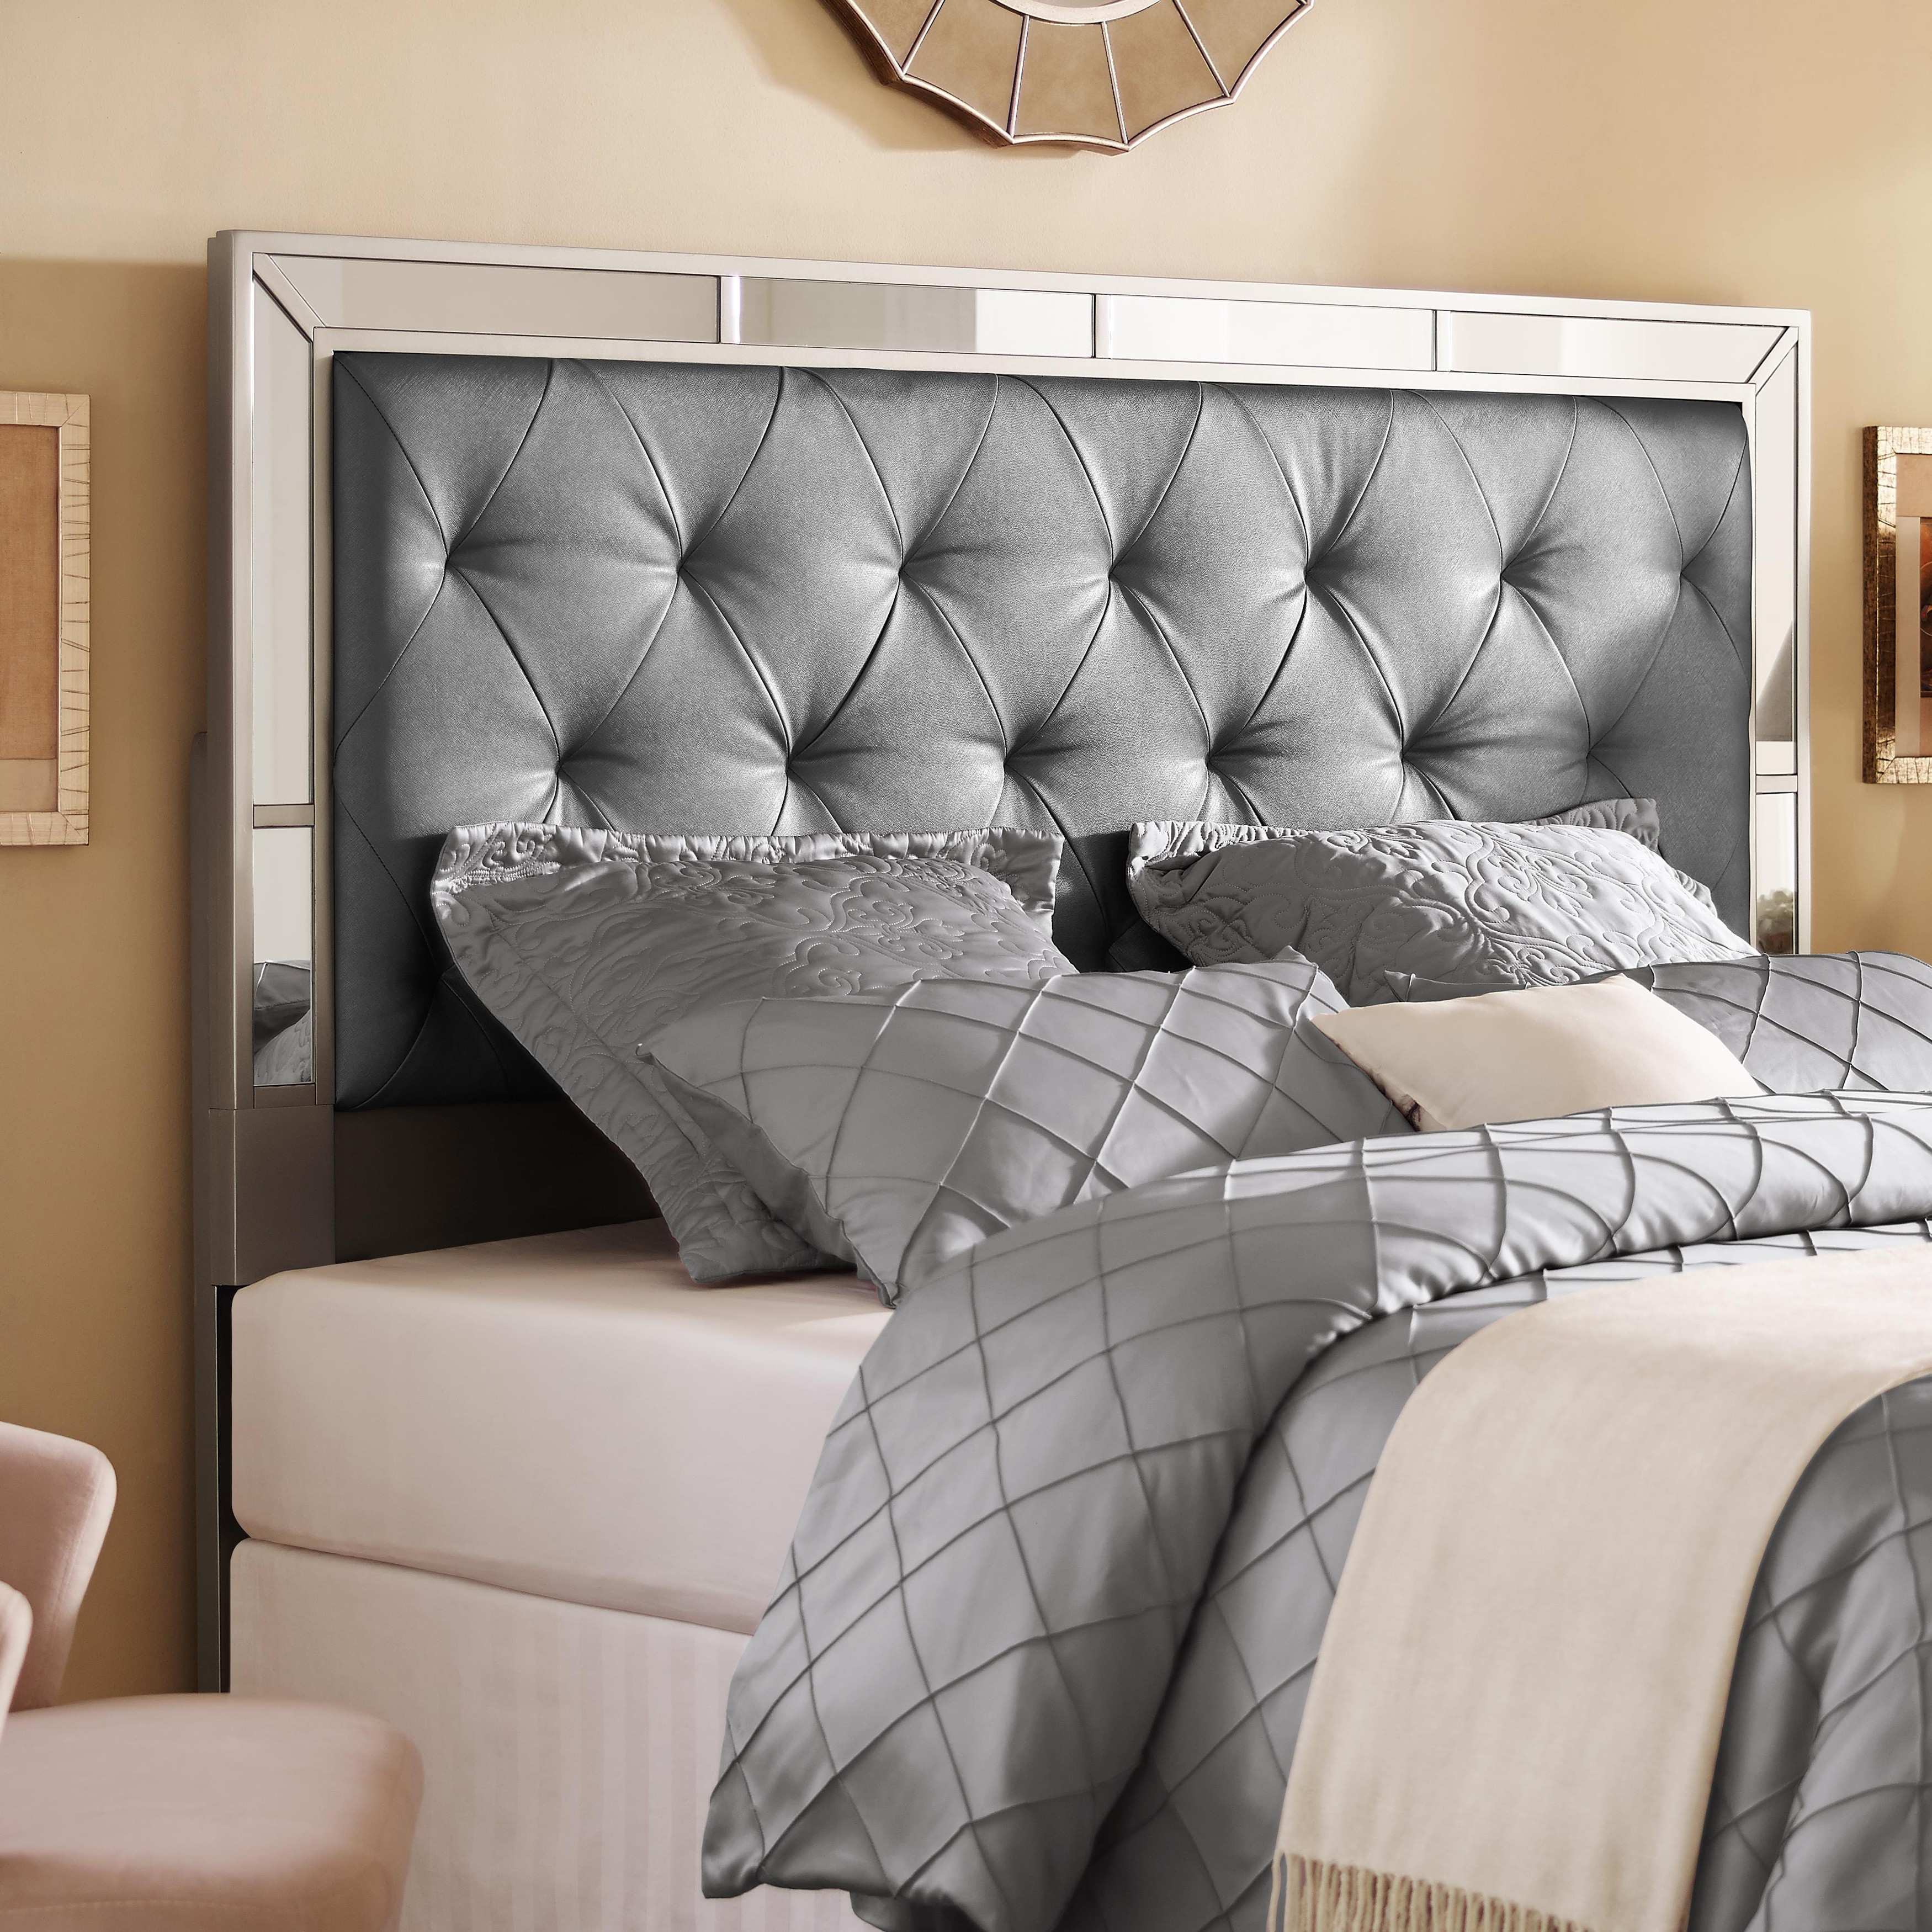 Mirrored Headboards Home Design Awful s Ideas Silver Queenfull